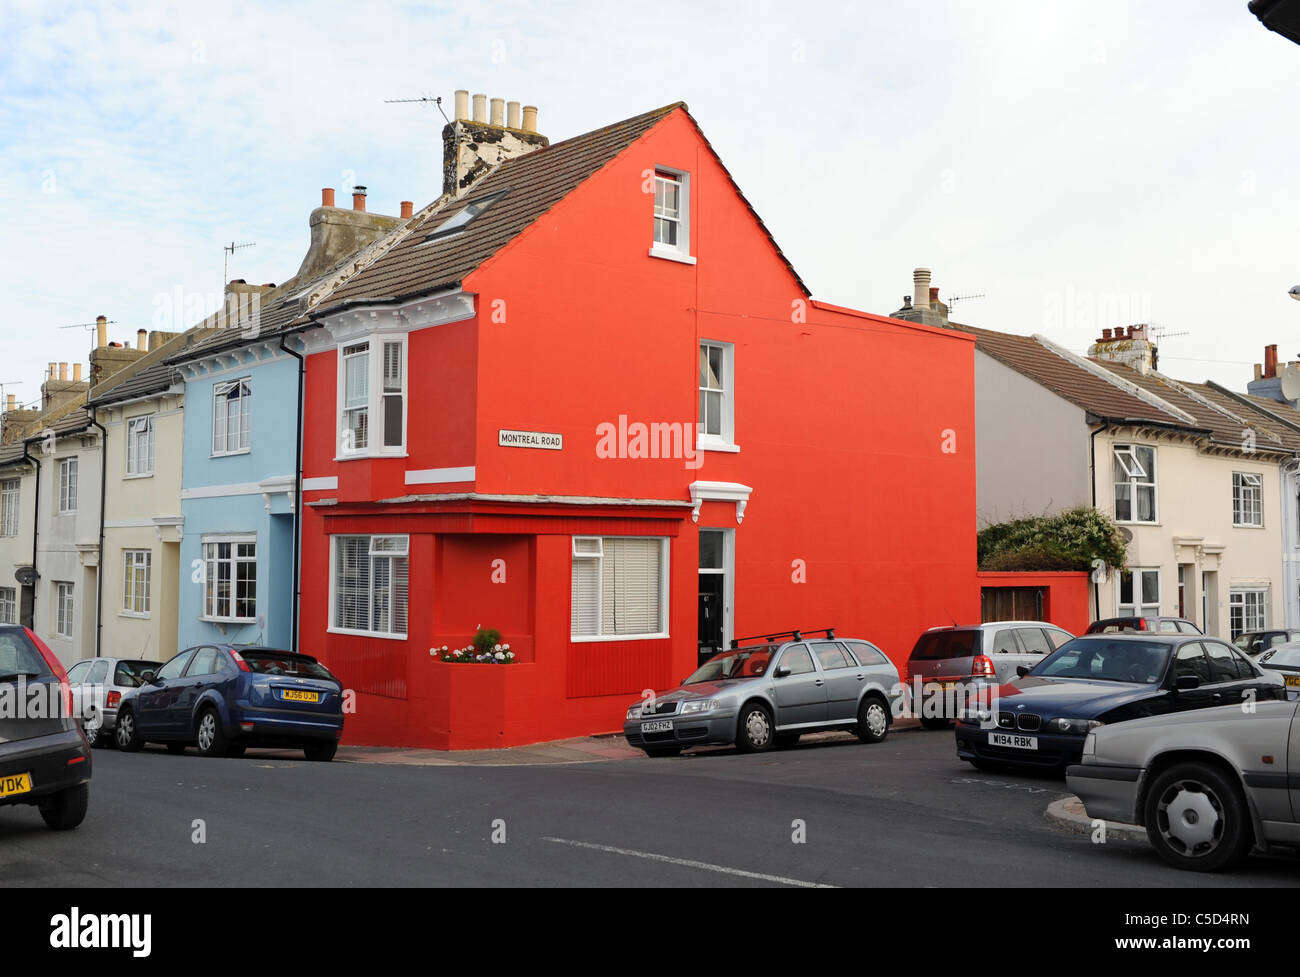 Bright Red Painted House In The Hanover Area Of Brighton Sussex UK